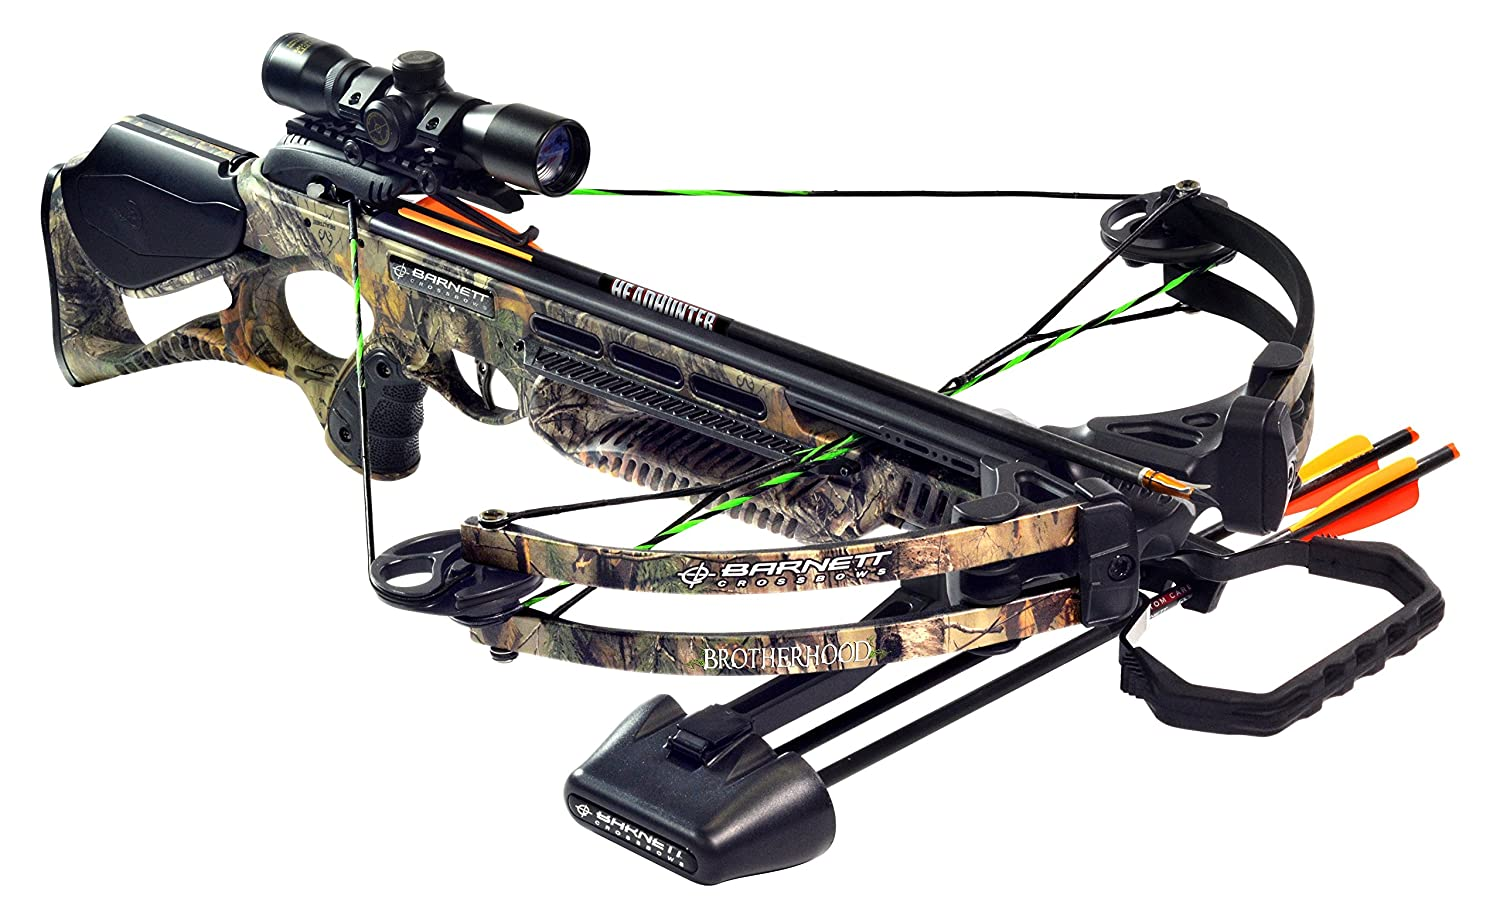 The Best Crossbow 3